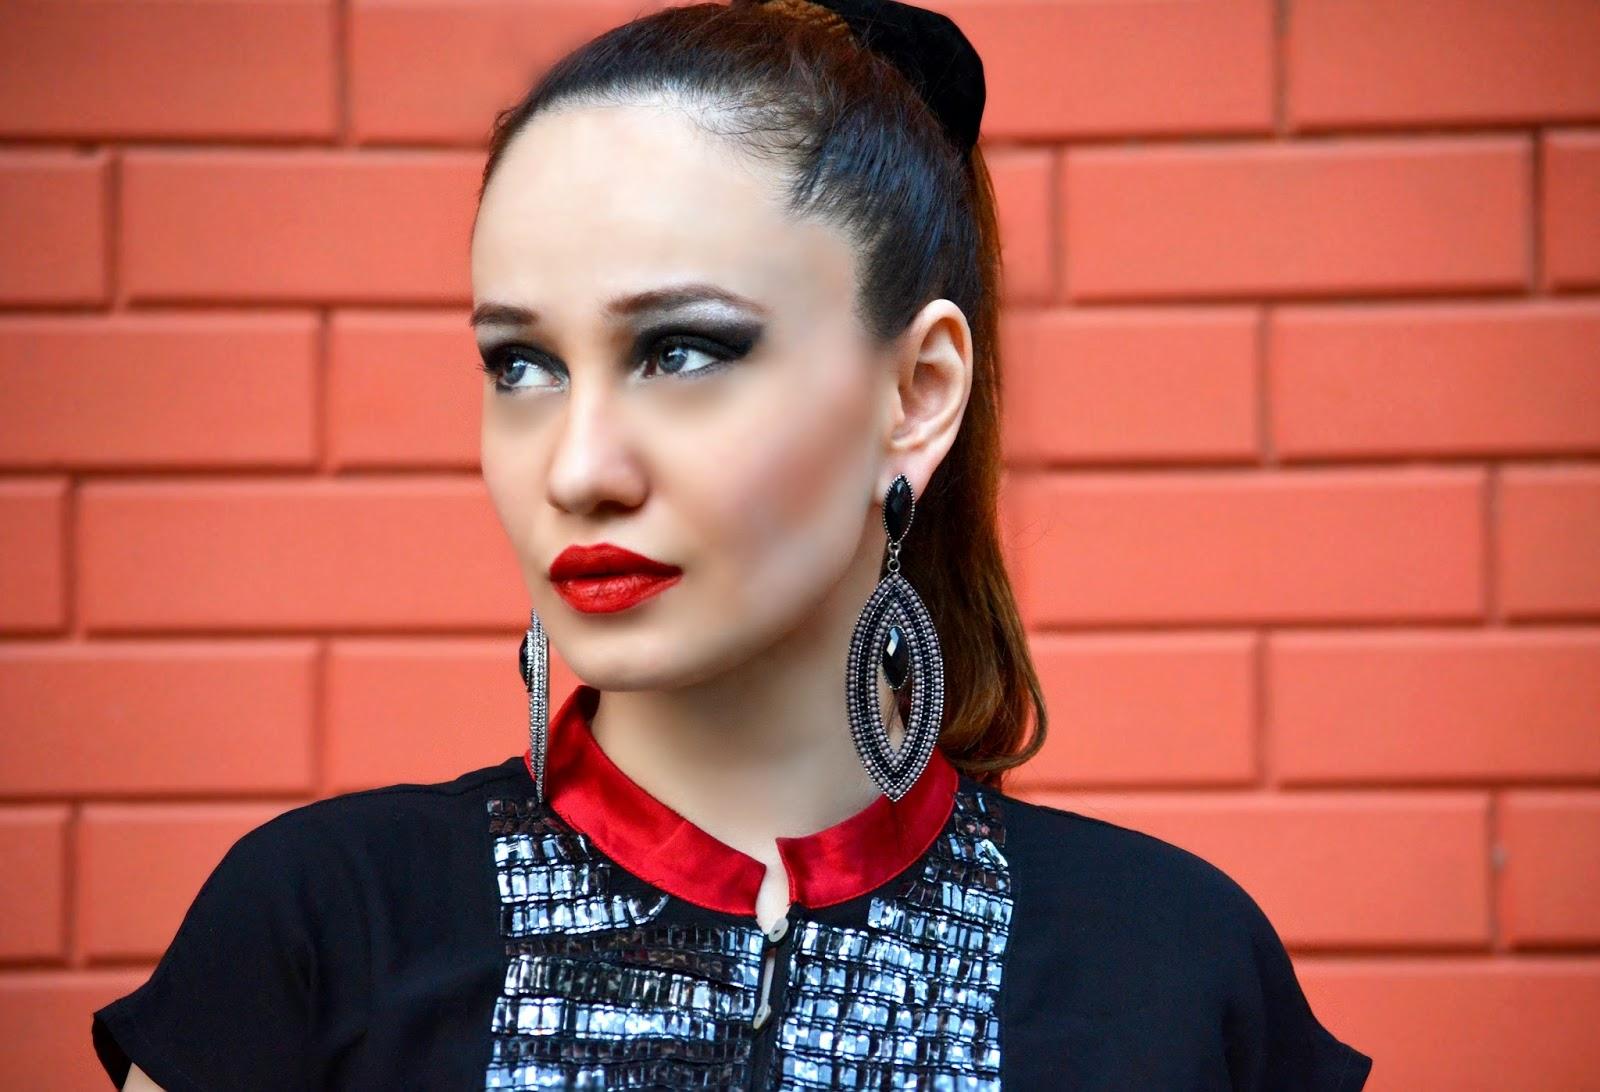 MAC Russian Red, Black Earrings